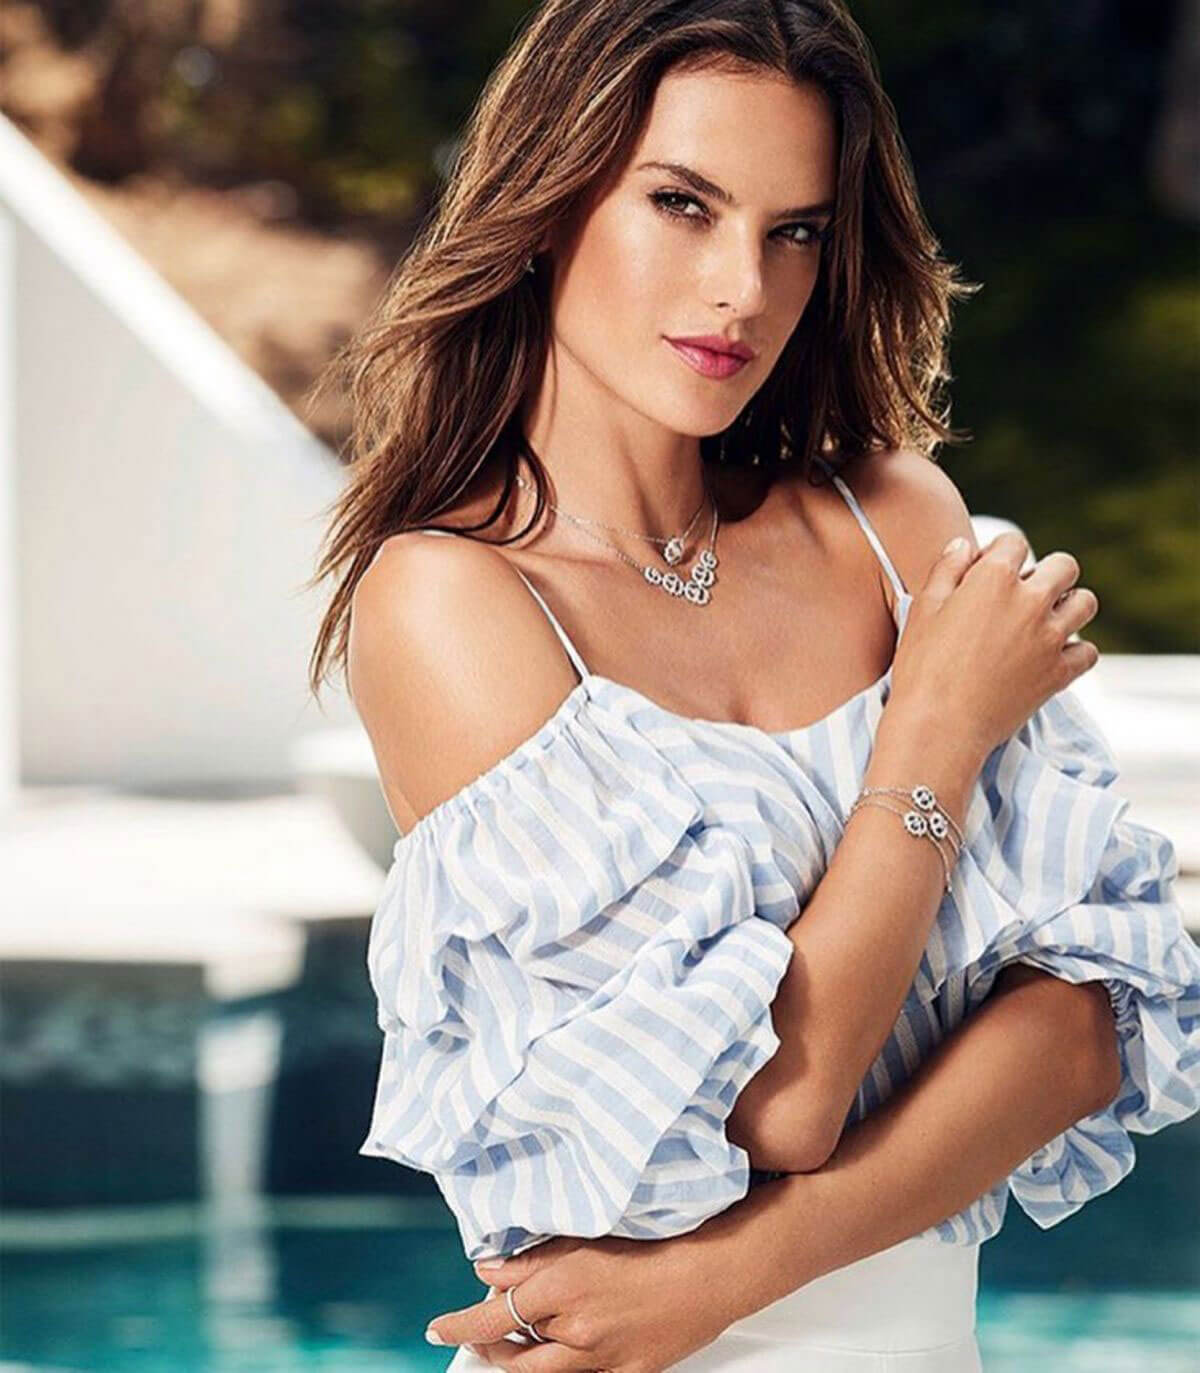 Alessandra Ambrosio Poses for Swarovski Advertising Campaign, 2018 Issue